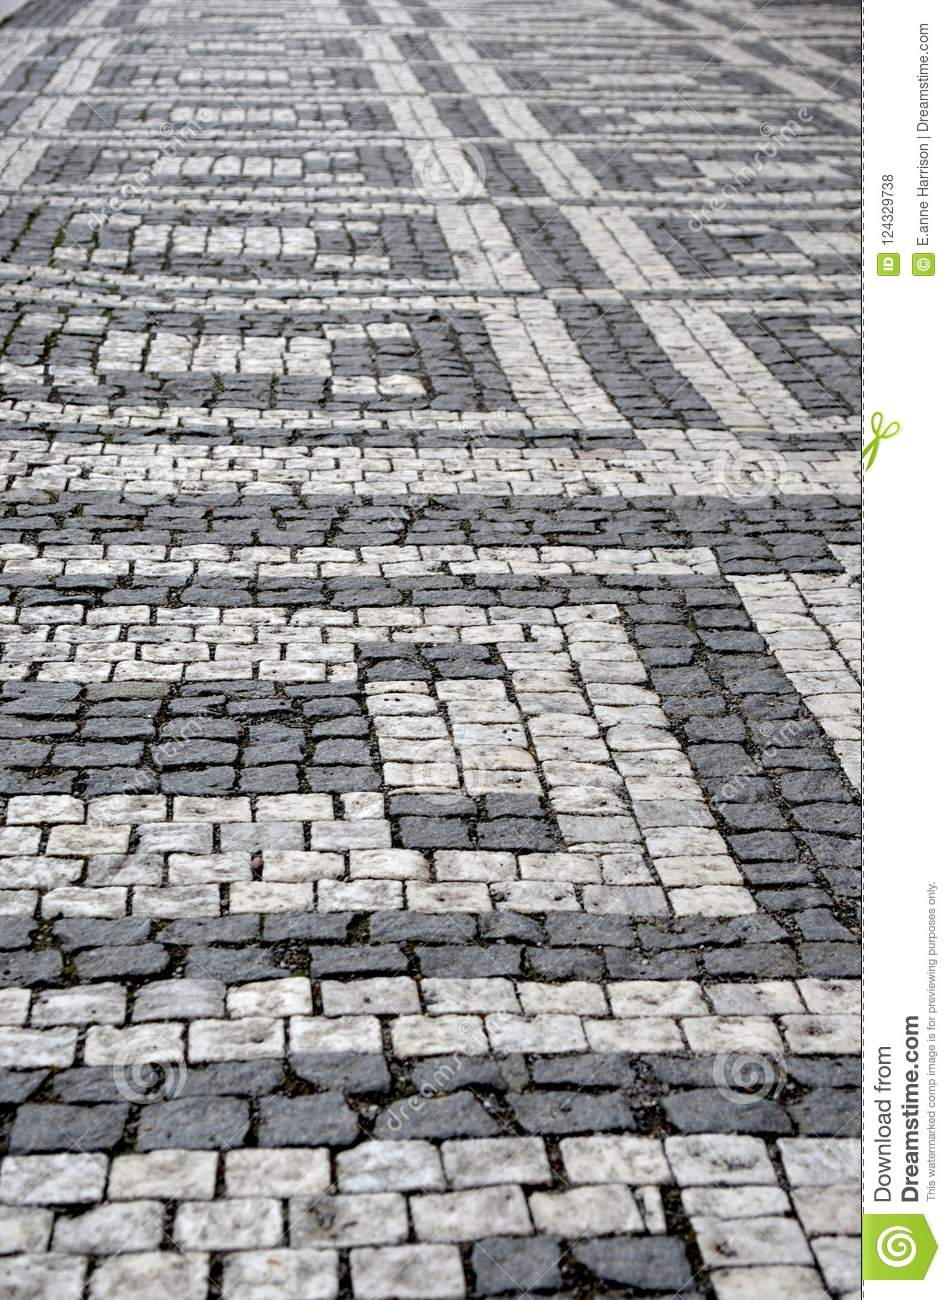 A Geometric Pattern Made By Light And Dark Grey Cobblestones Stock